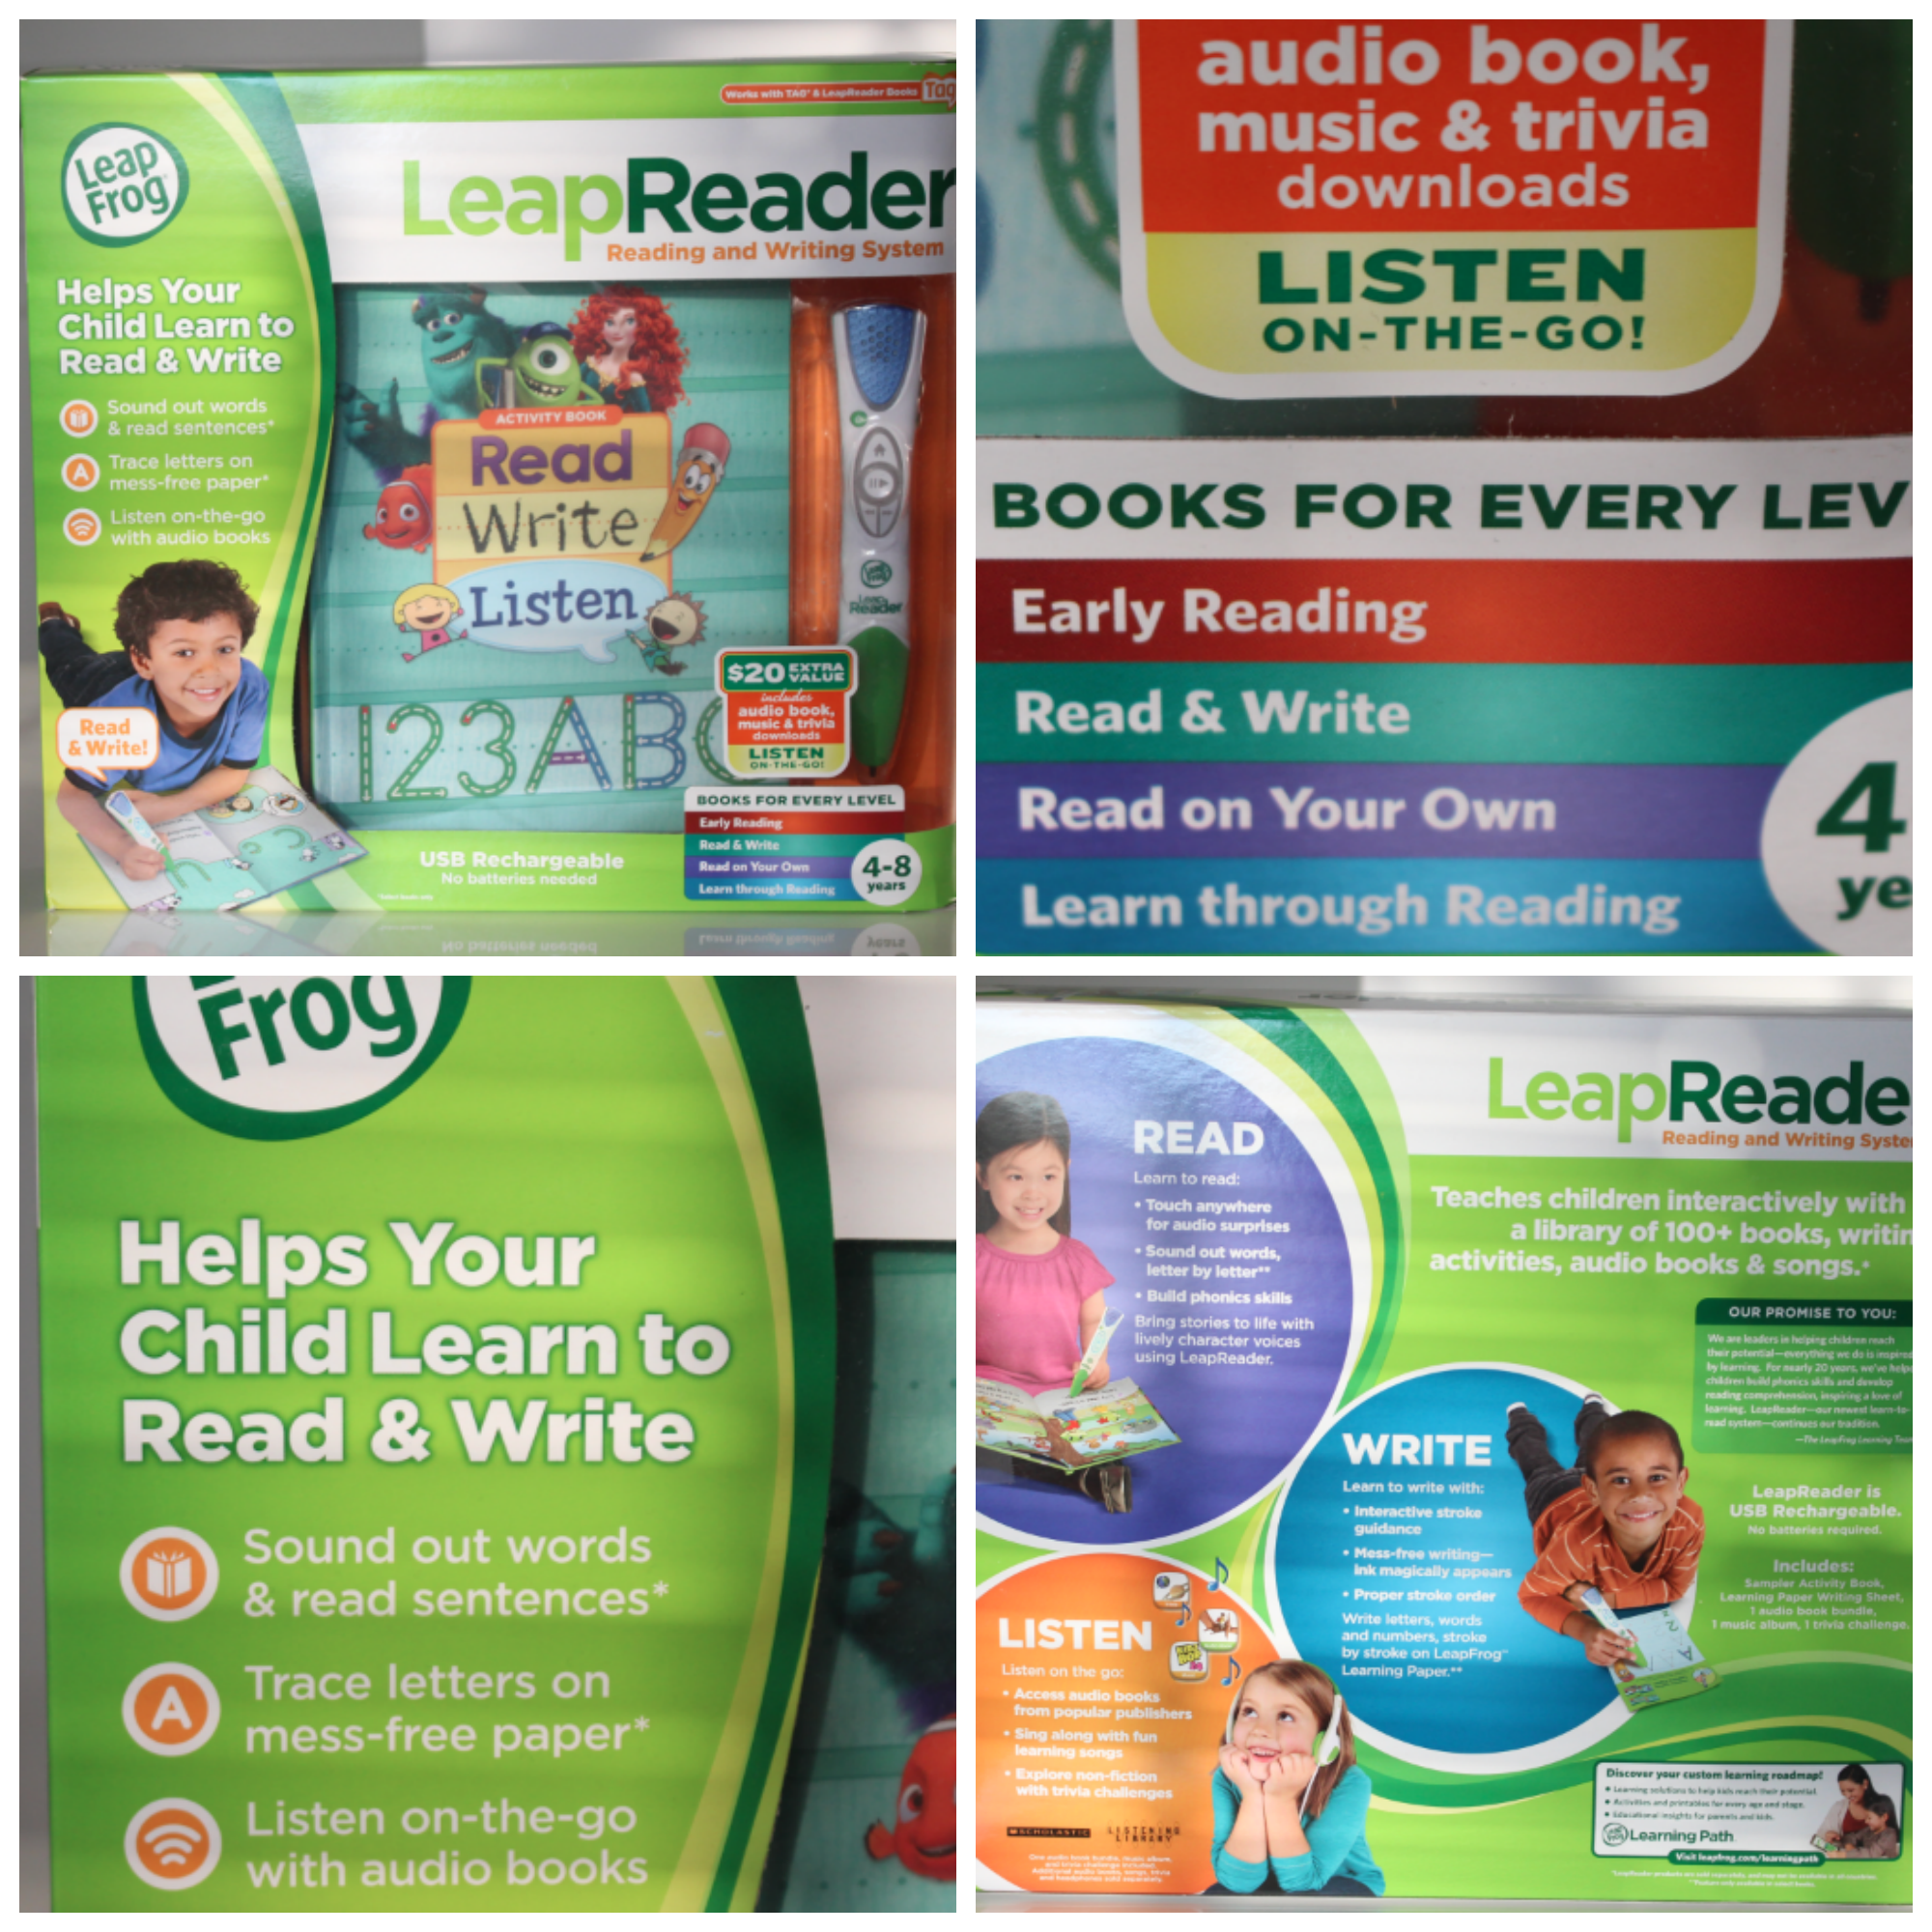 LeapReader Reading Party!